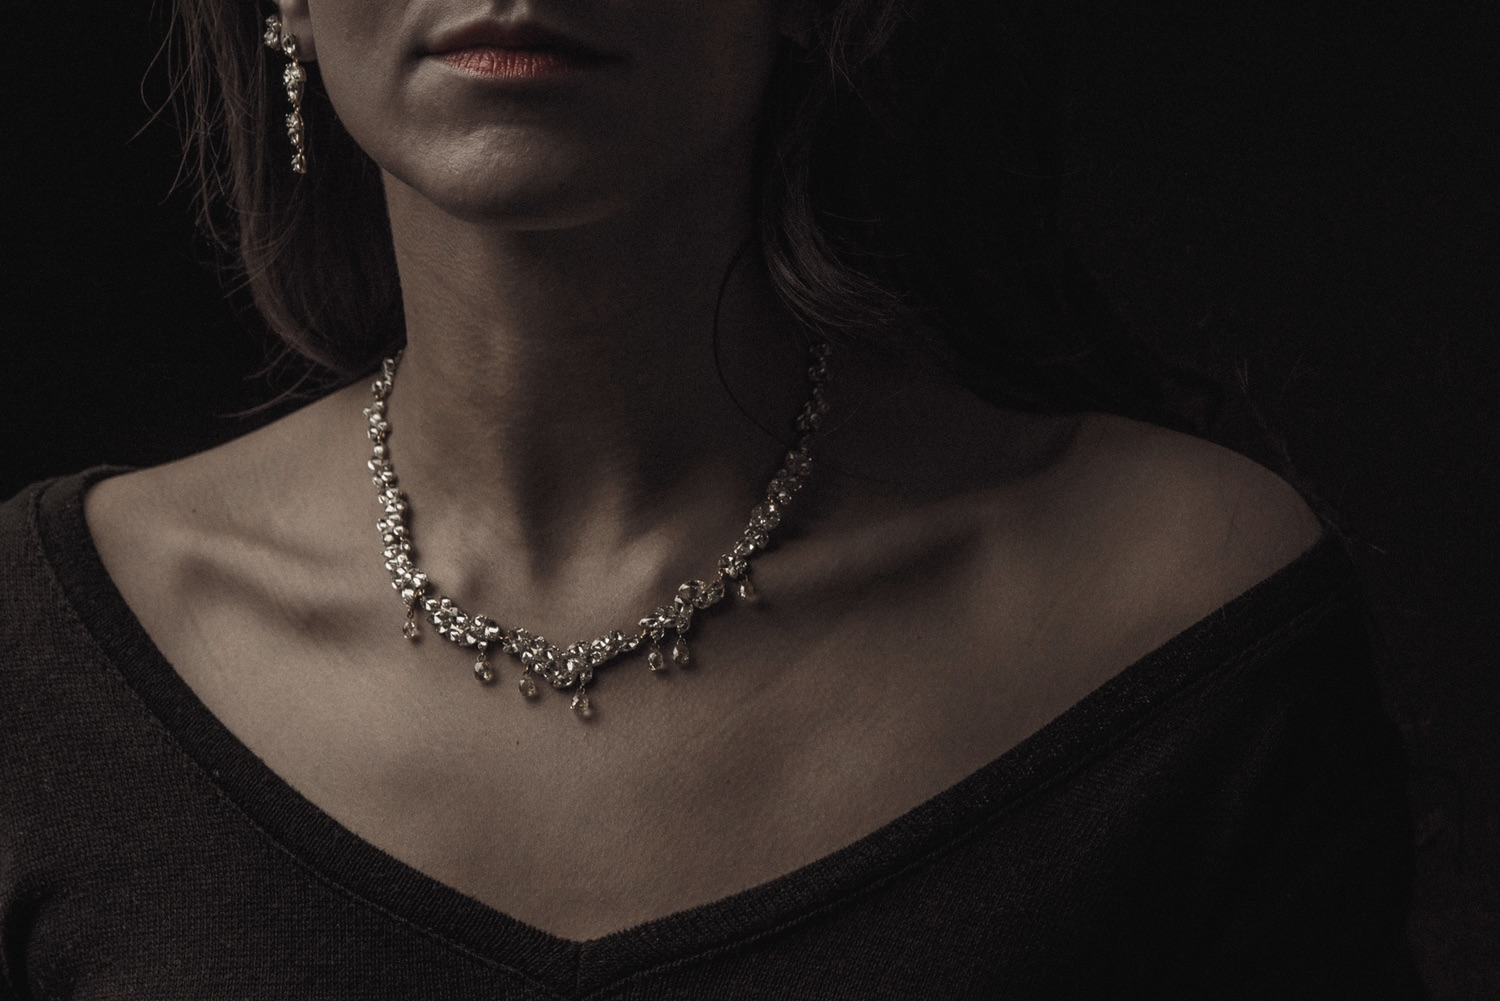 The Jewel - Todd Pownell Tap - Lookbook - Model Wearing Necklace and Earrings